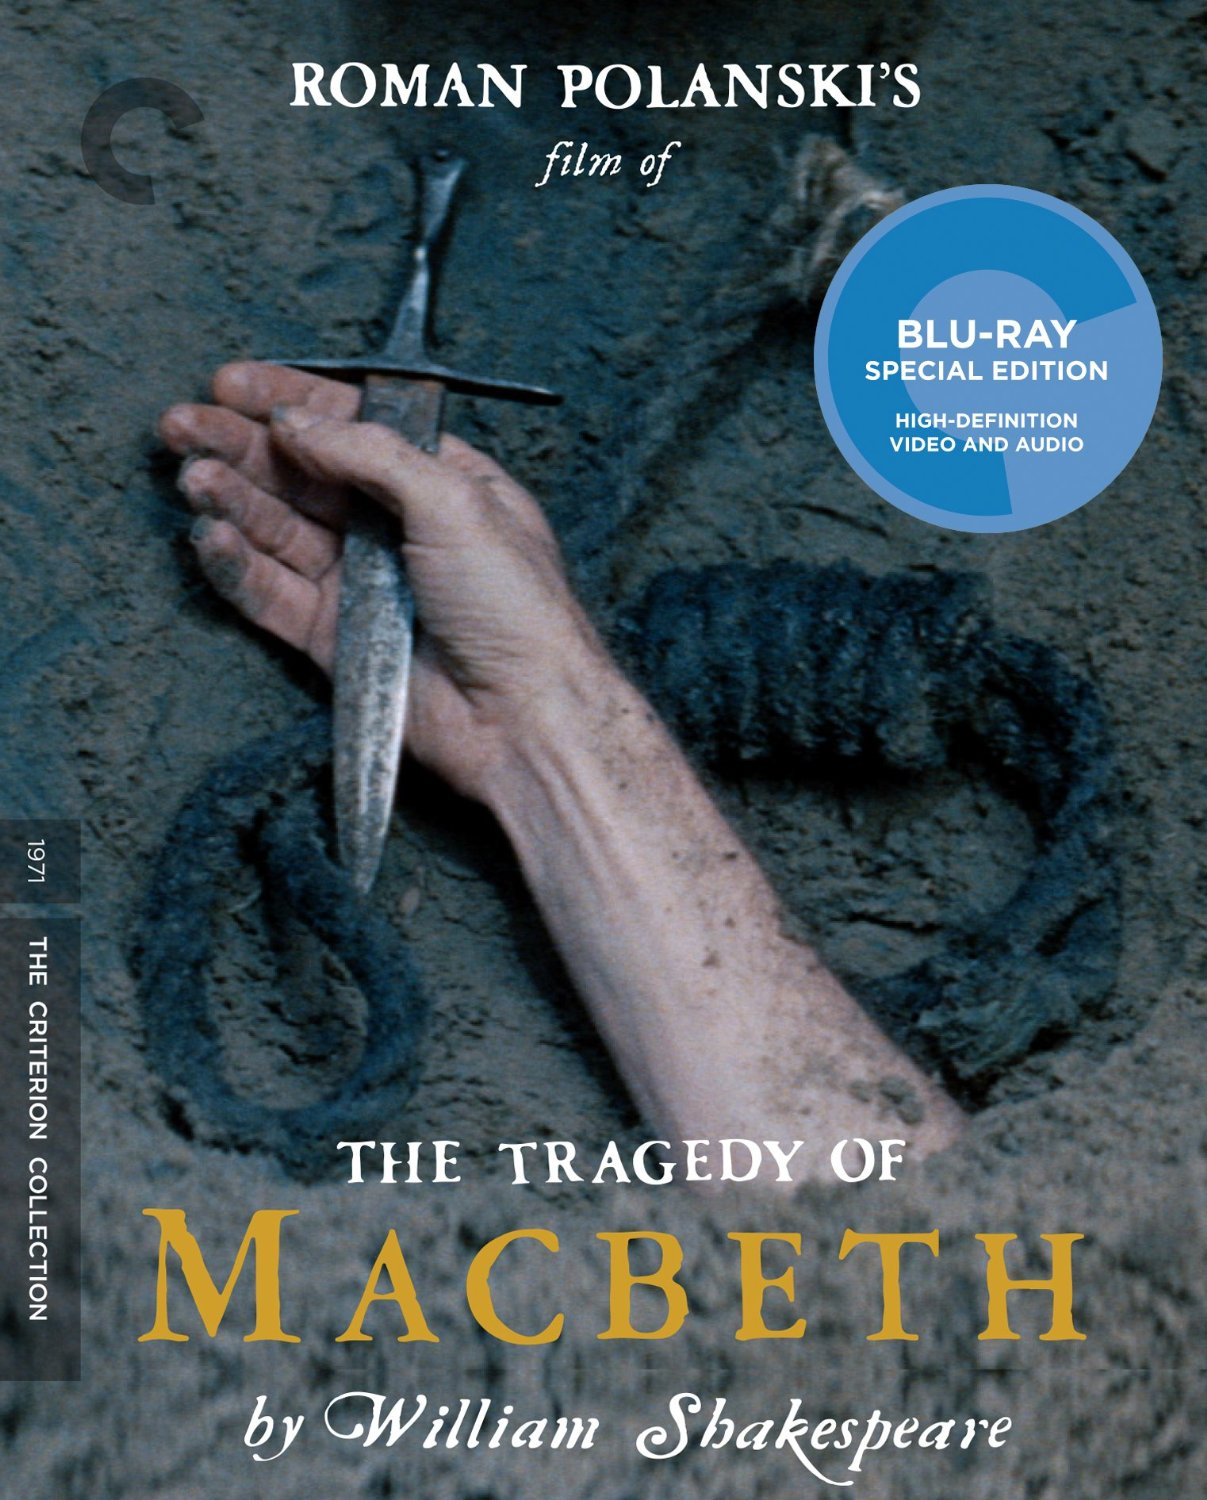 criterion blogathon r polanski s ldquo macbeth rdquo plot and criterion blogathon r polanski s ldquomacbethrdquo 1971